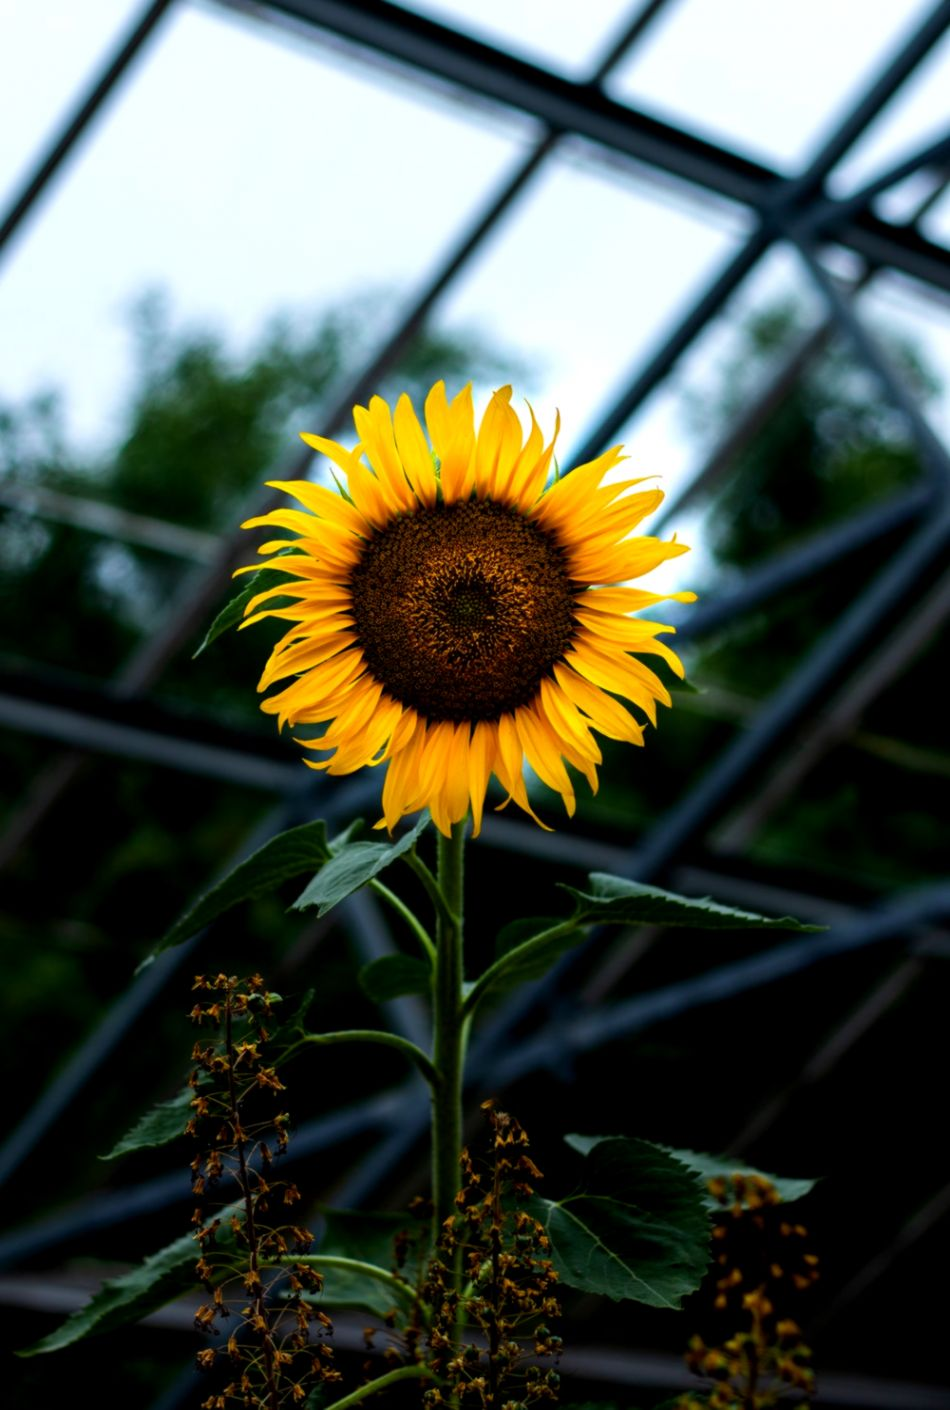 20 Sunflower Pictures Hq Download Free Images On Unsplash ...